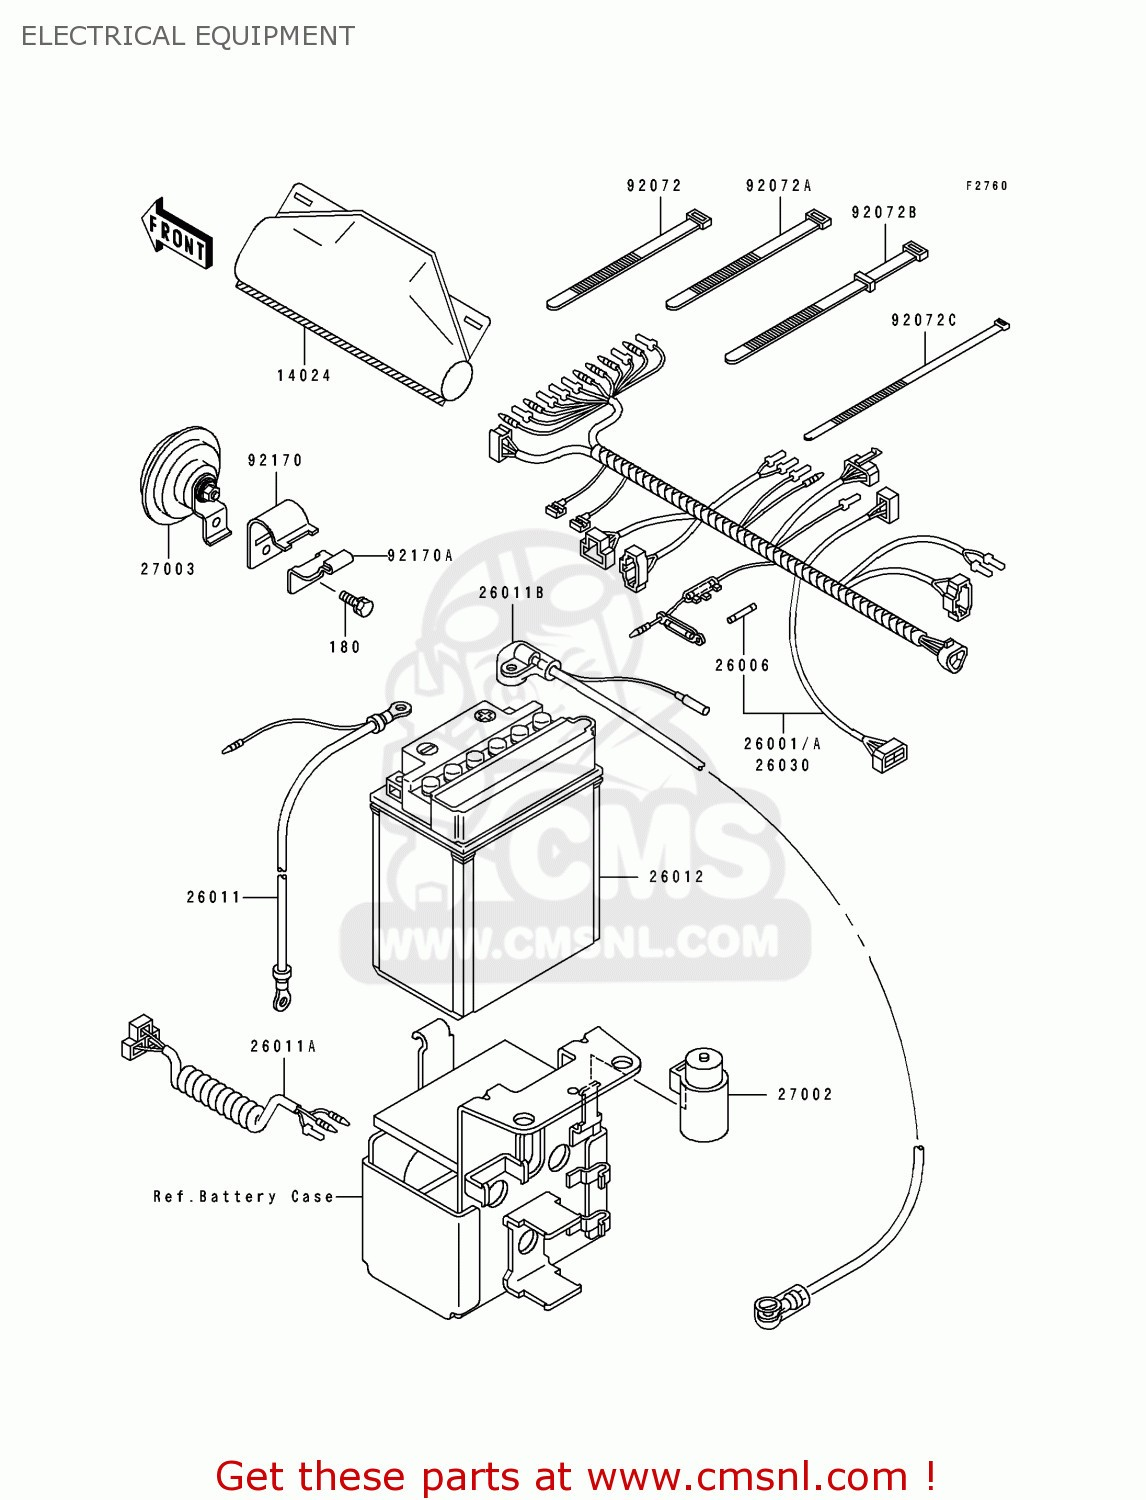 Wiring Diagram In Addition Yamaha Banshee Wiring Harness Diagram